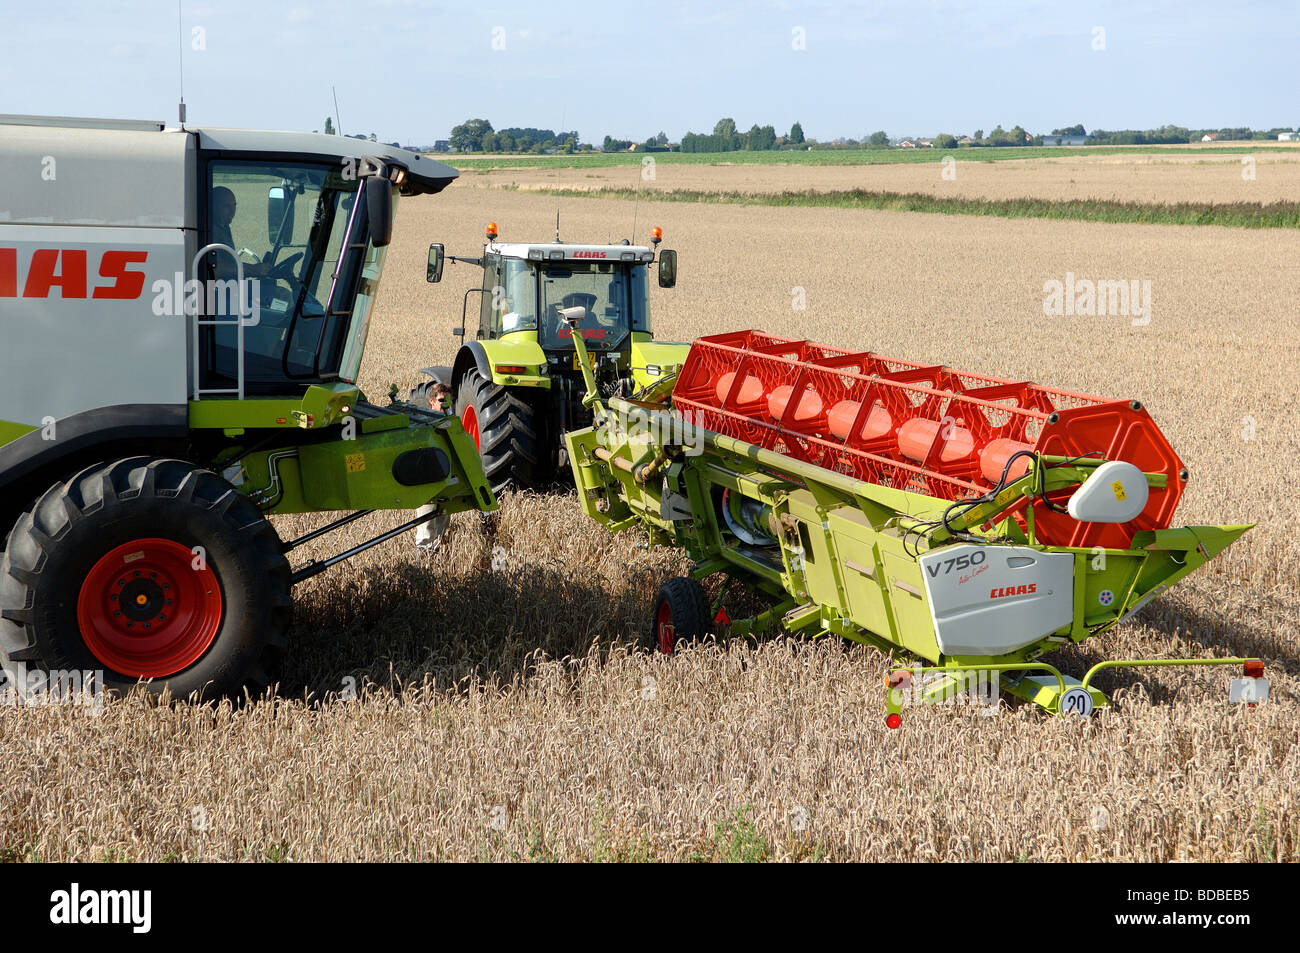 claas combine harvester fitting cutter table to machine. Black Bedroom Furniture Sets. Home Design Ideas